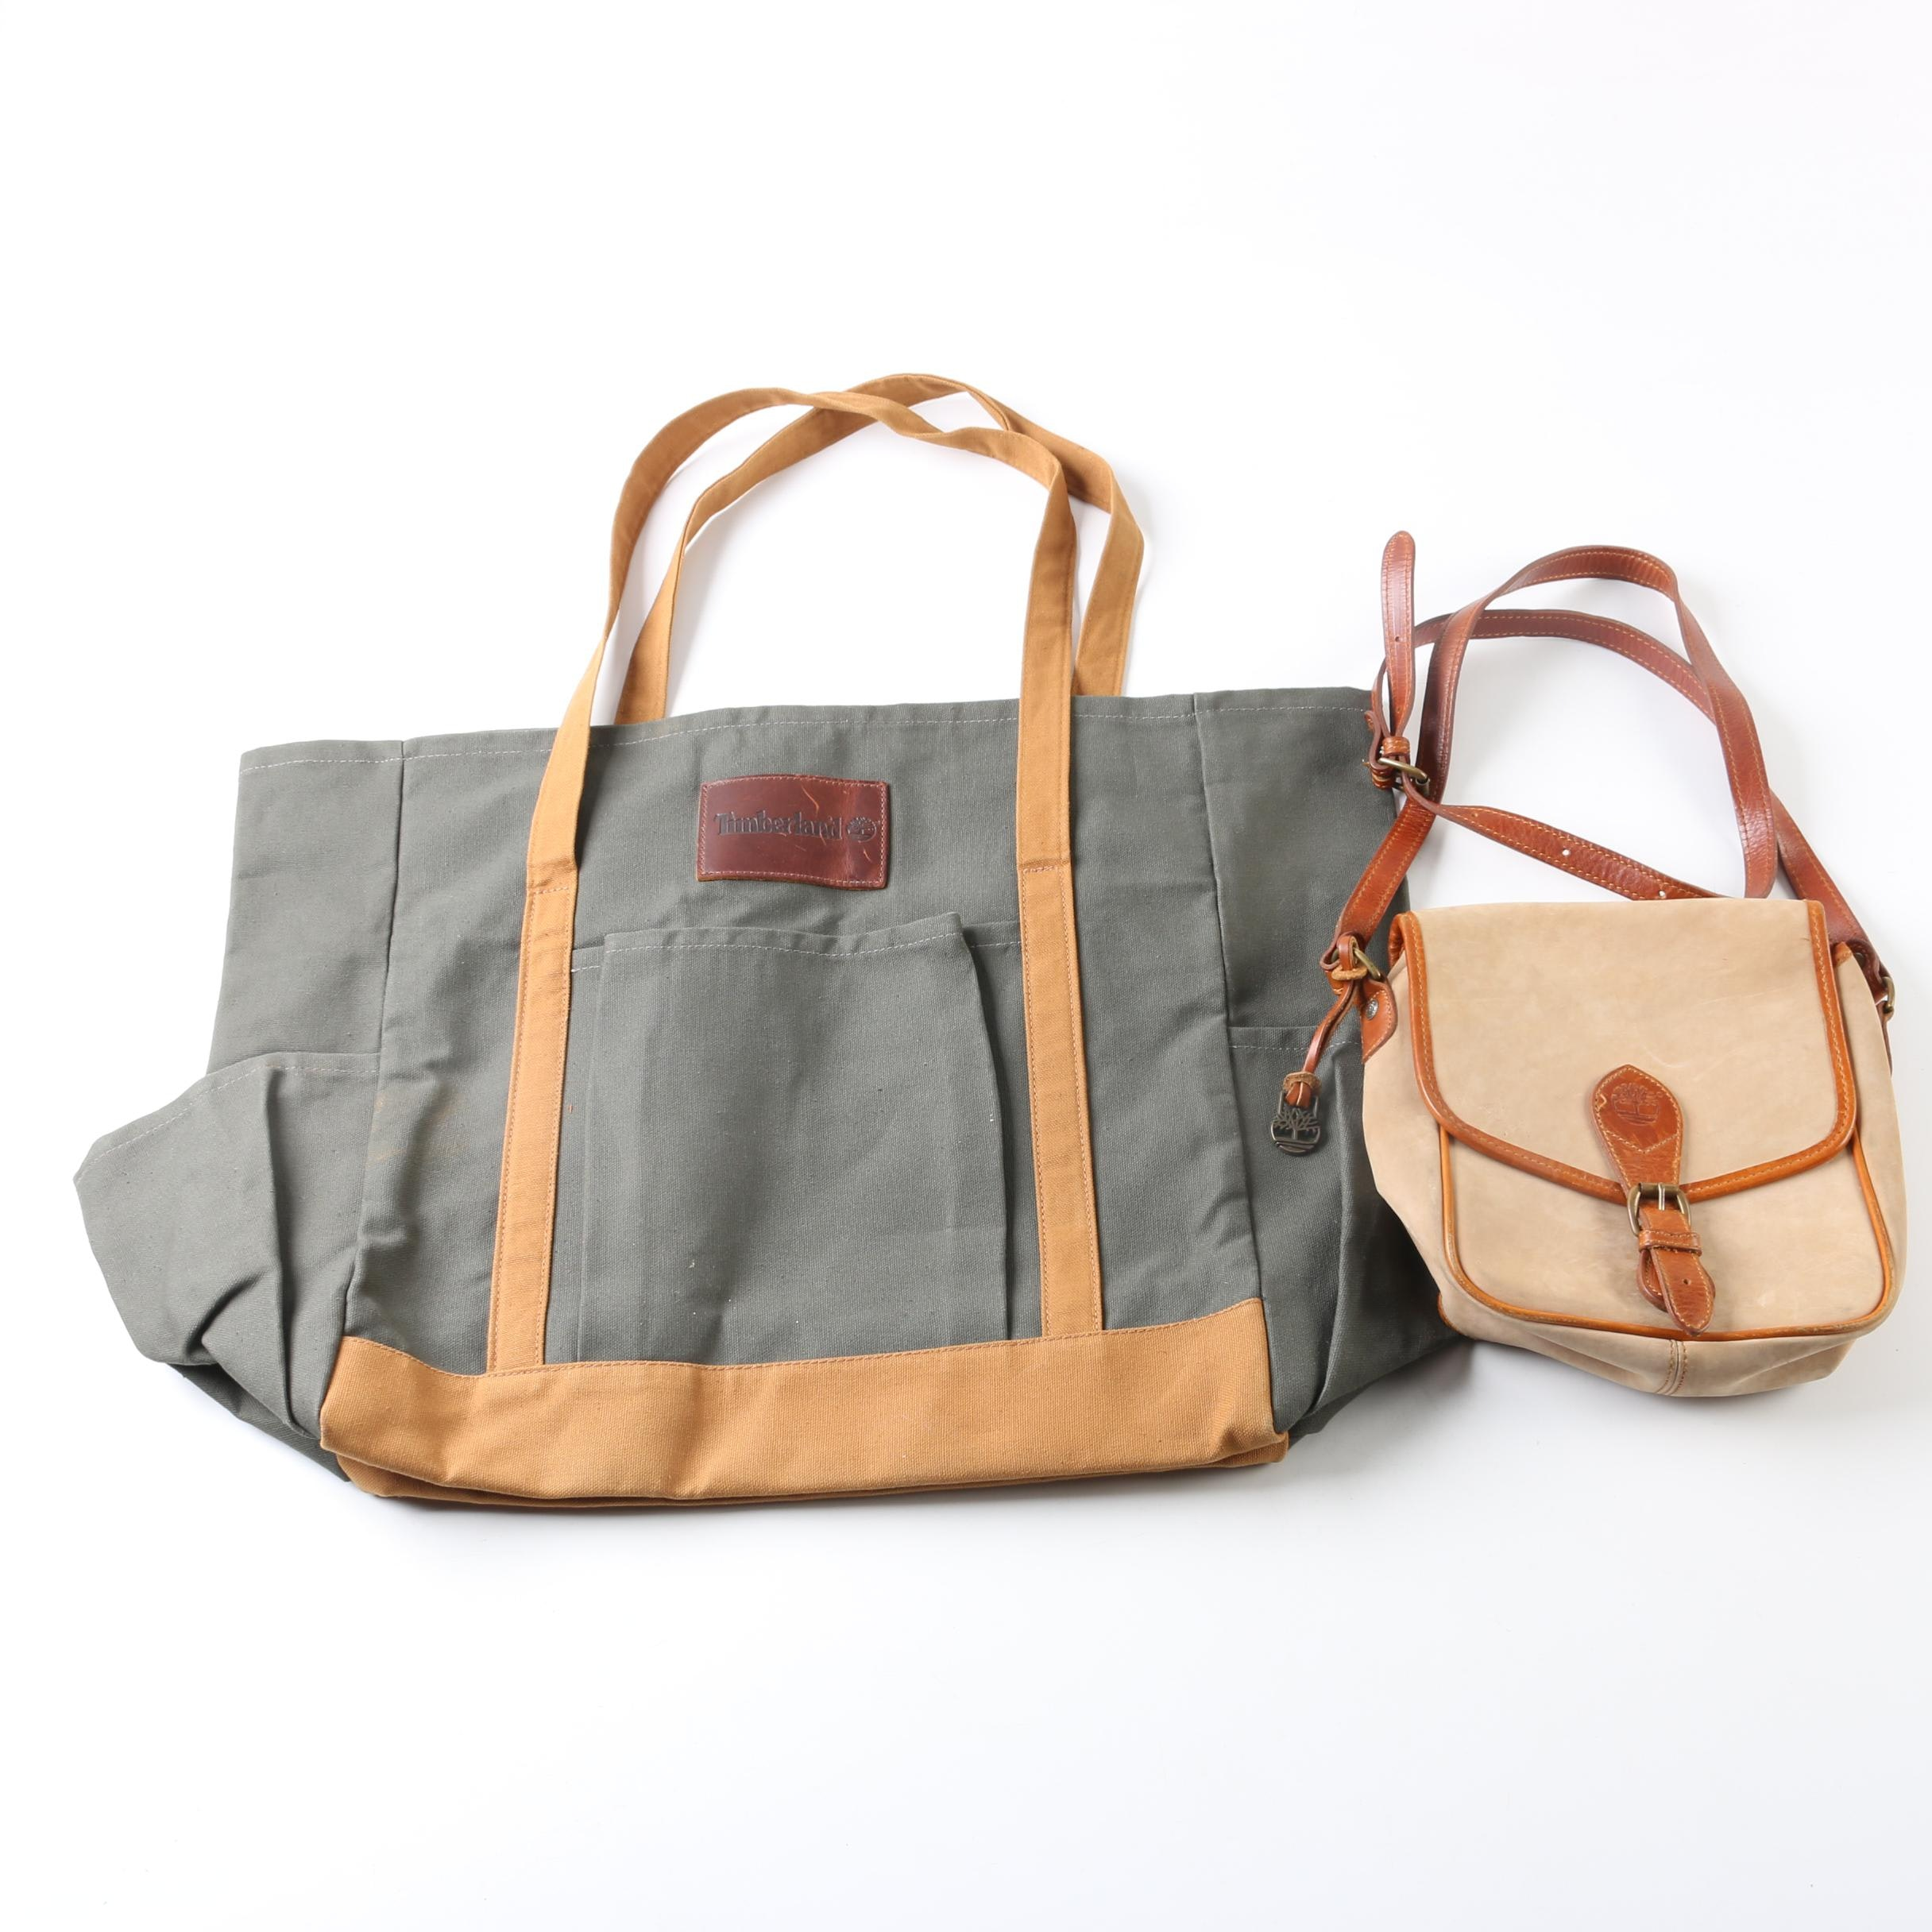 Timberland Canvas Tote and Suede Crossbody Bag